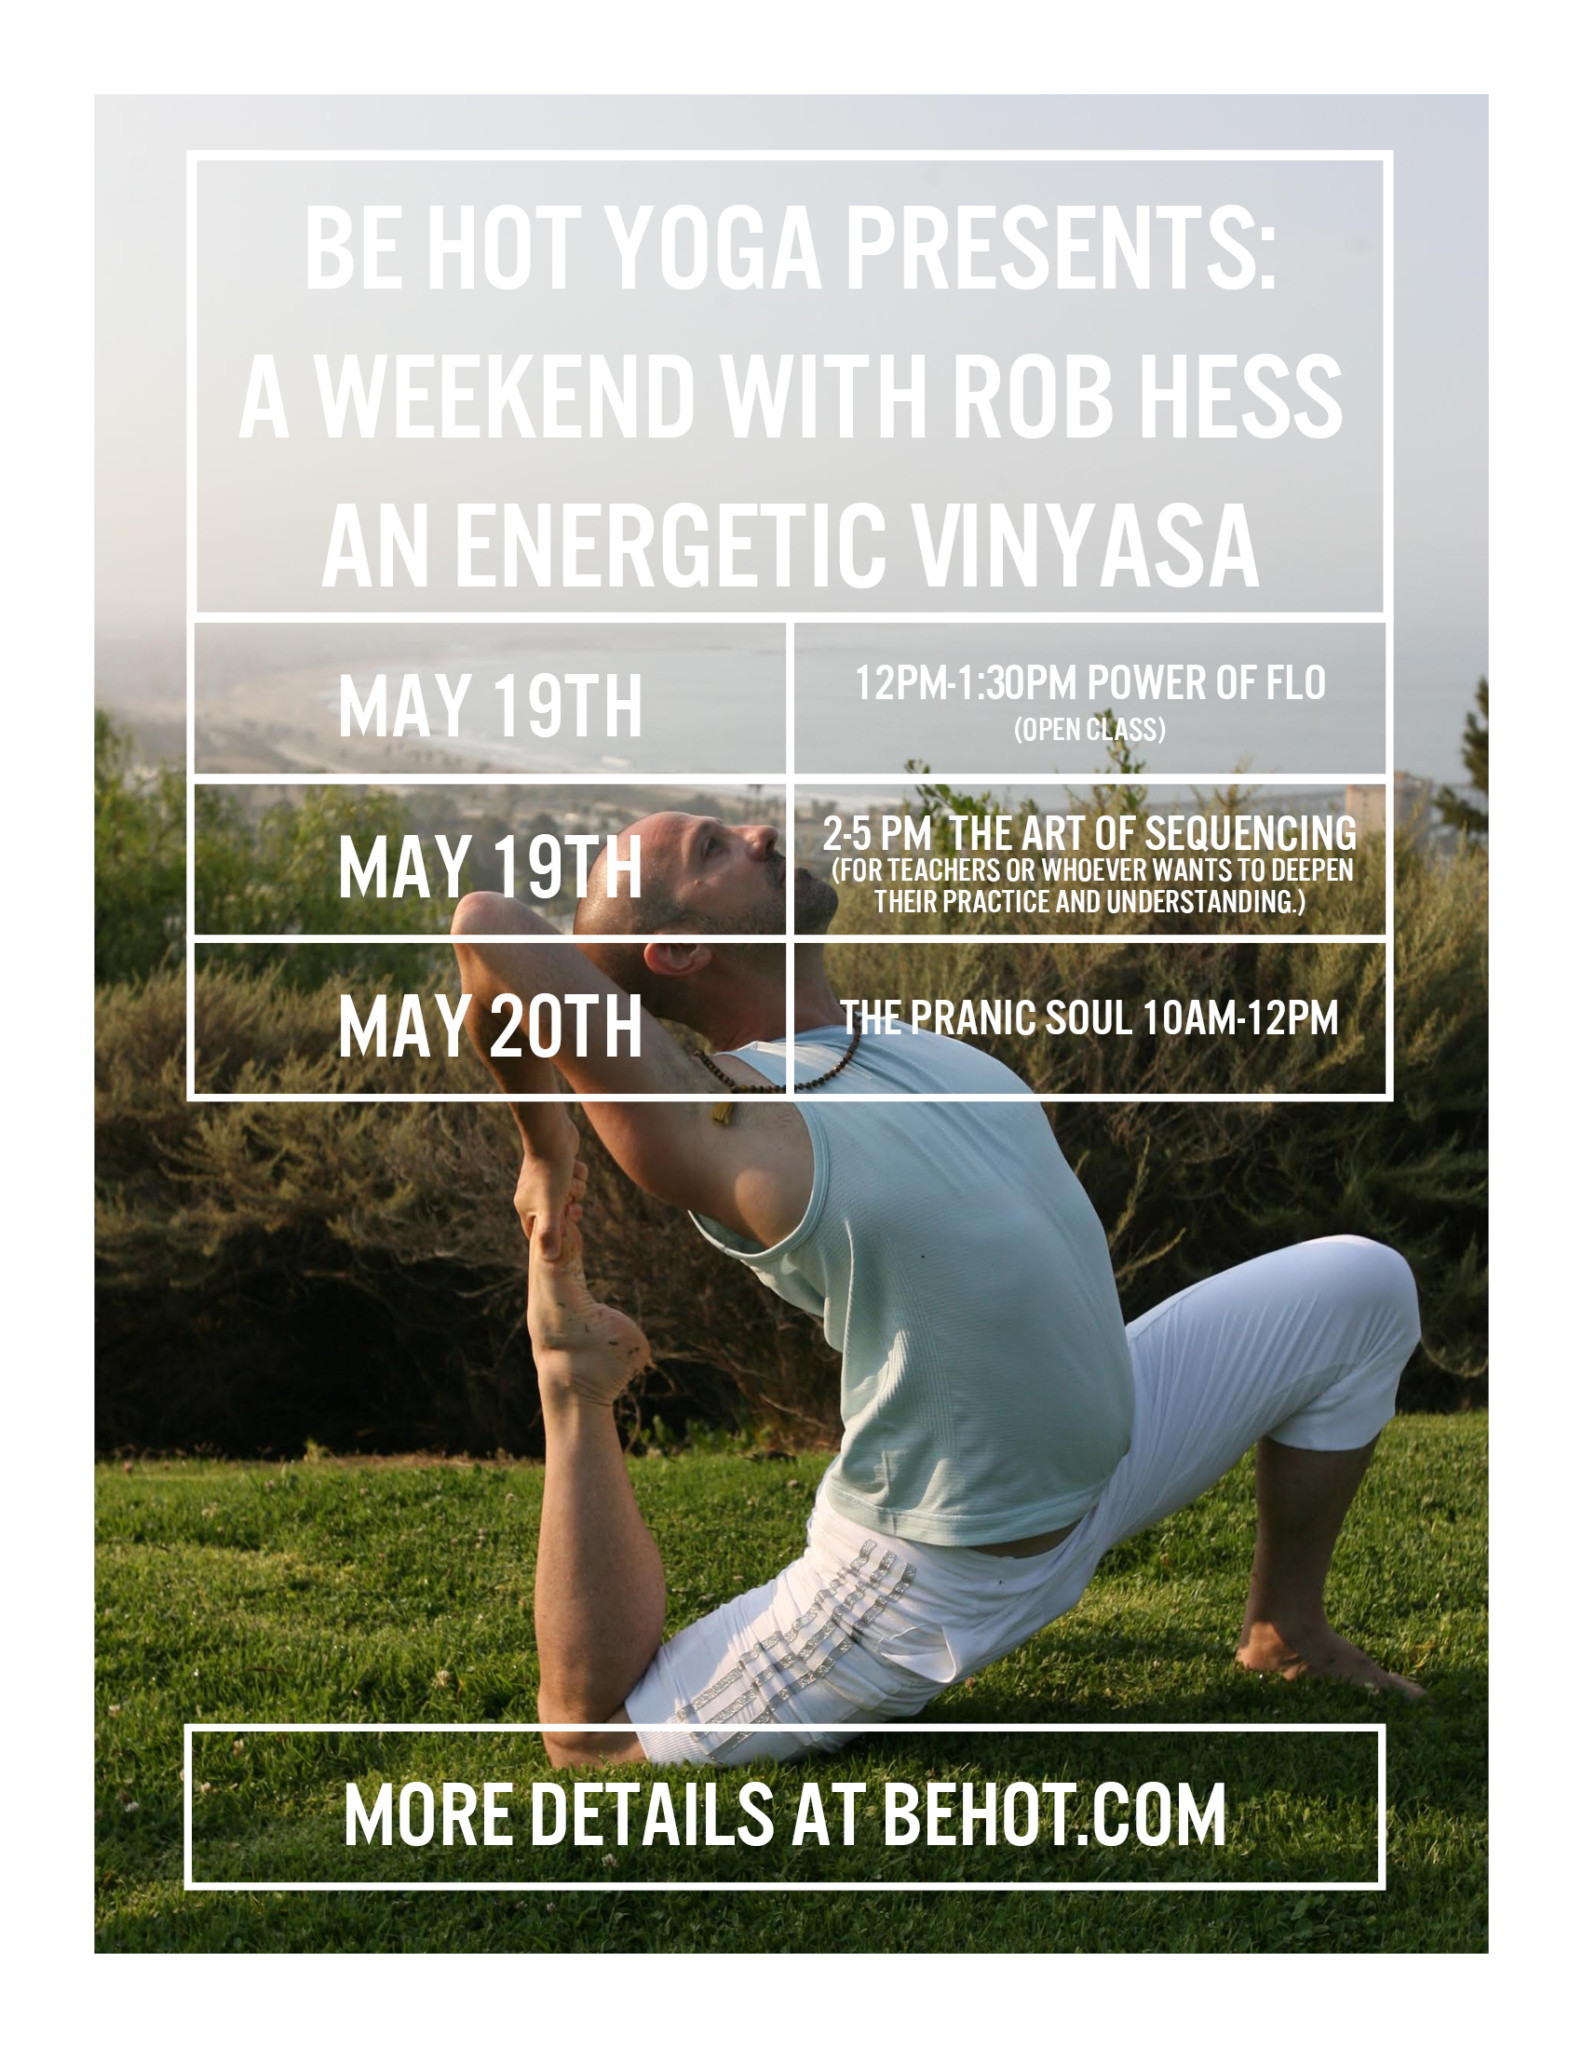 A Weekend with Rob Hess